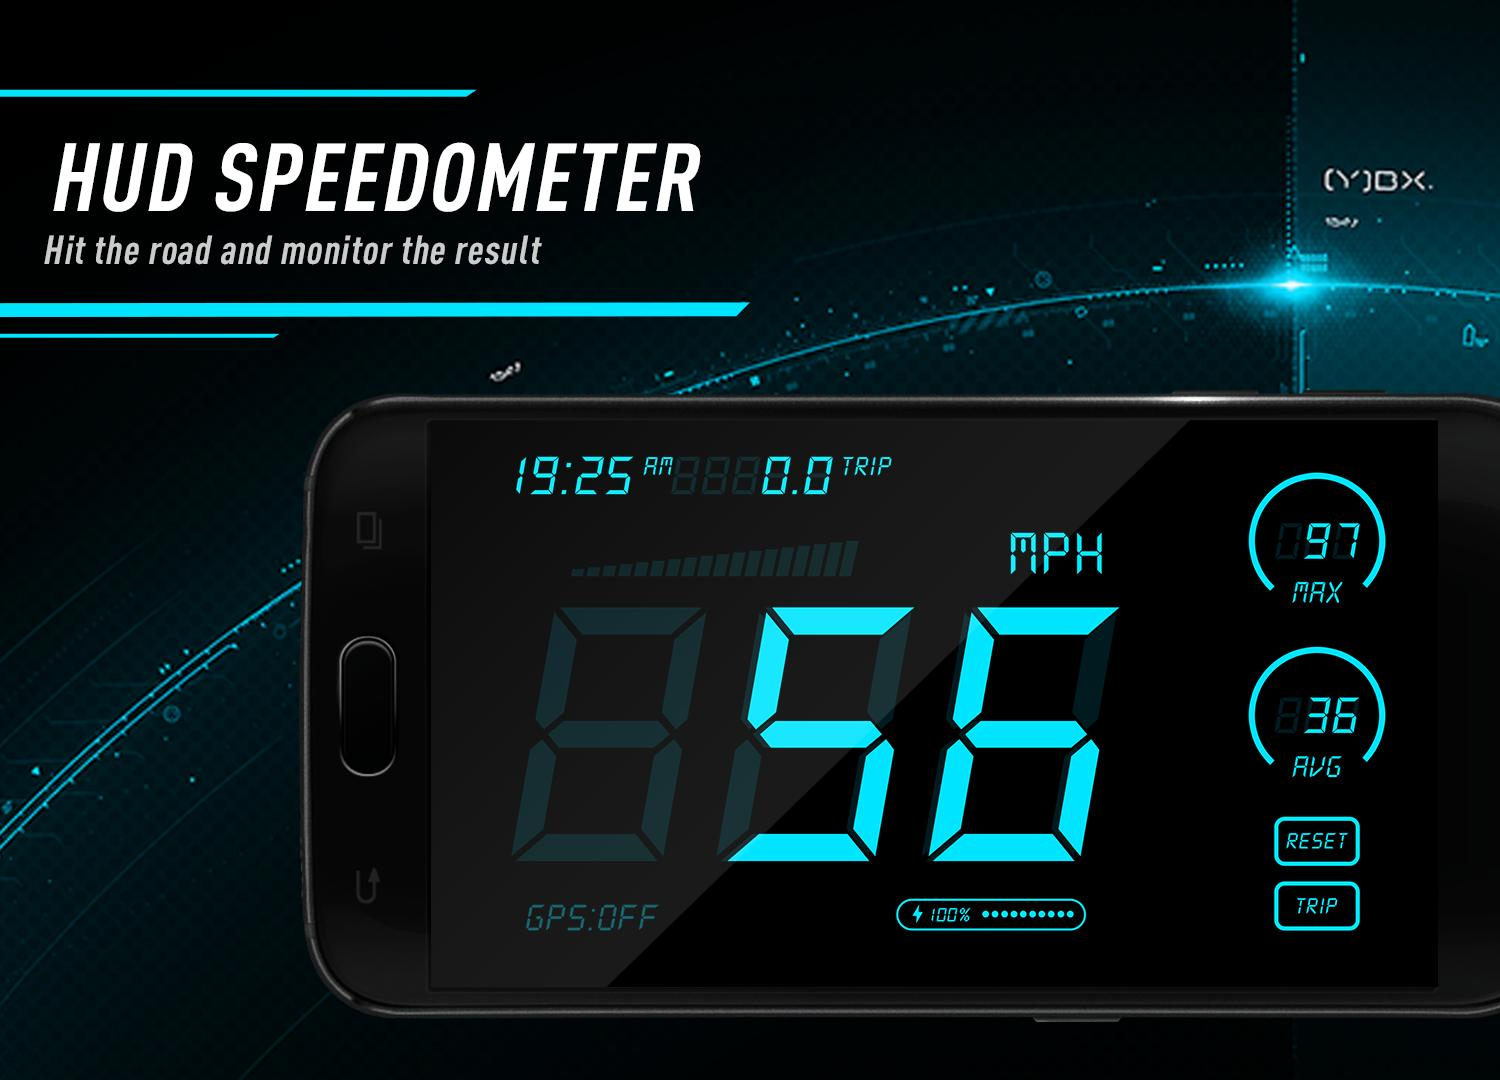 Hud Speedometer - Car Speed Limit App with GPS for Android - APK